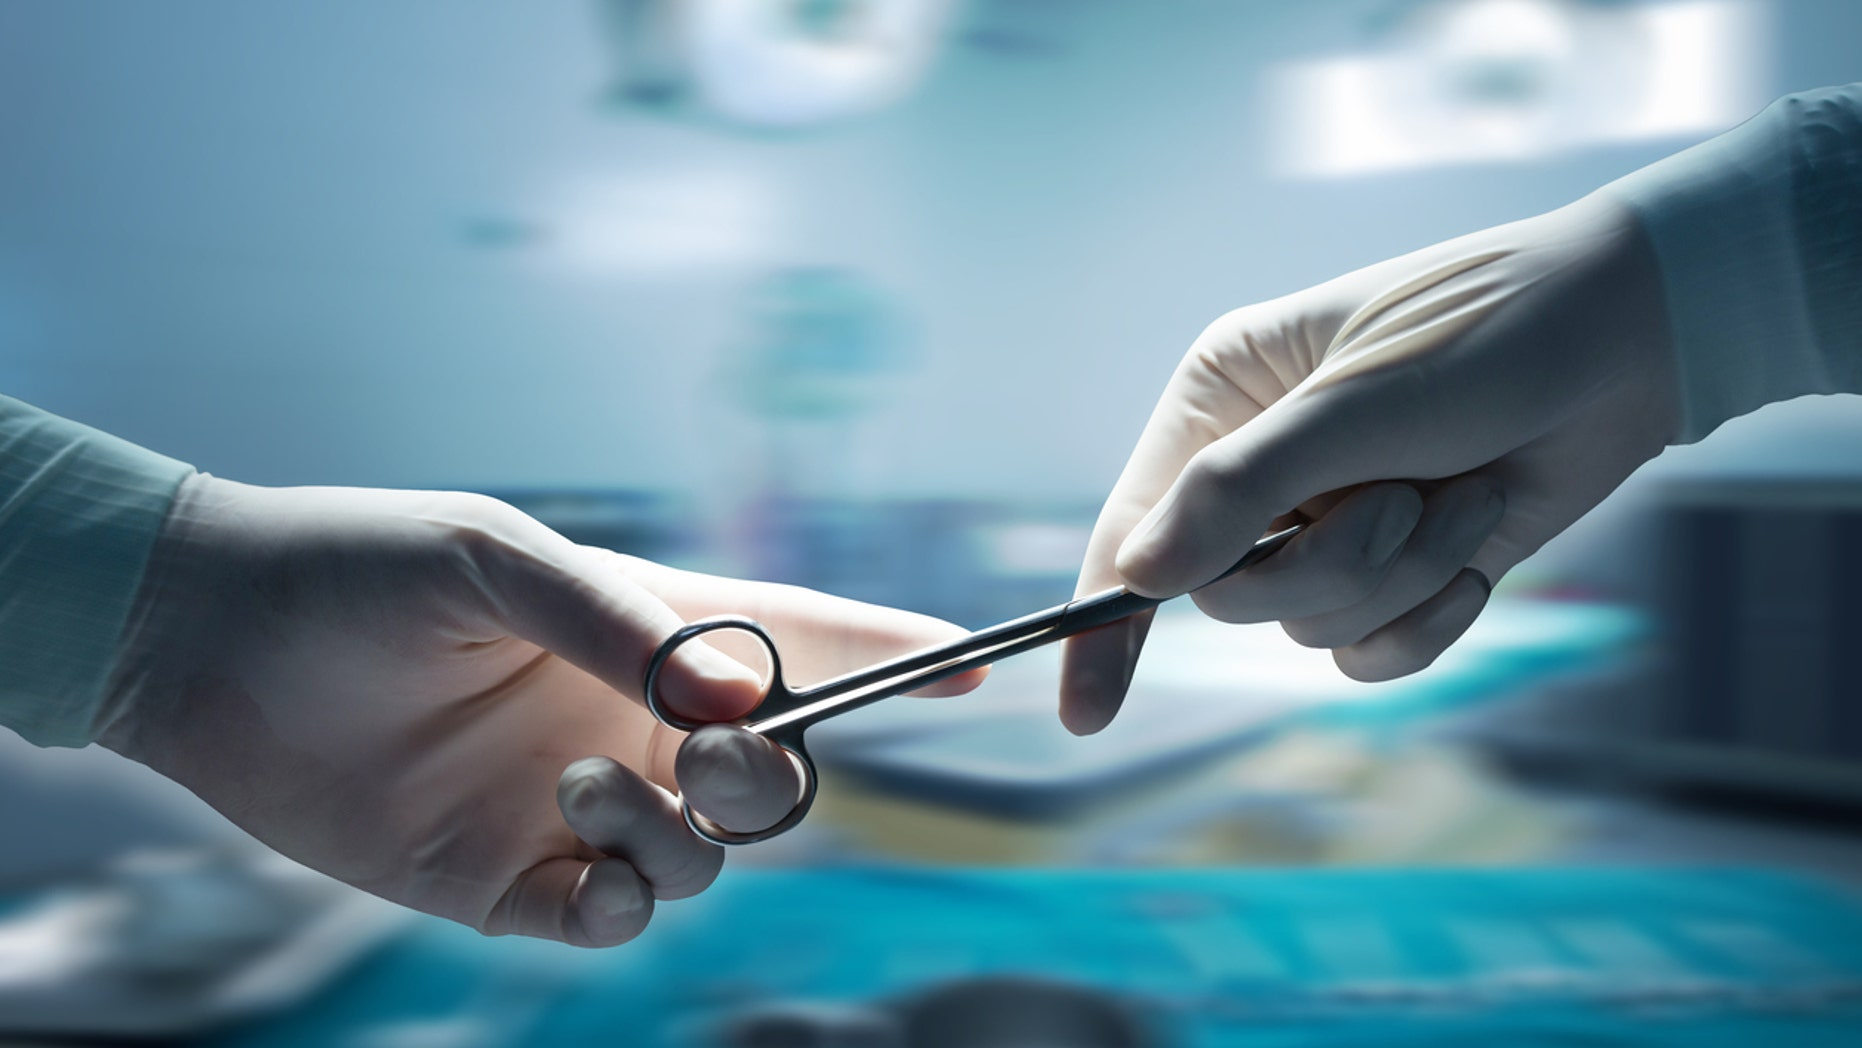 While doctors and surgeons have high training and take great care to avoid mistakes, they're not infallible.